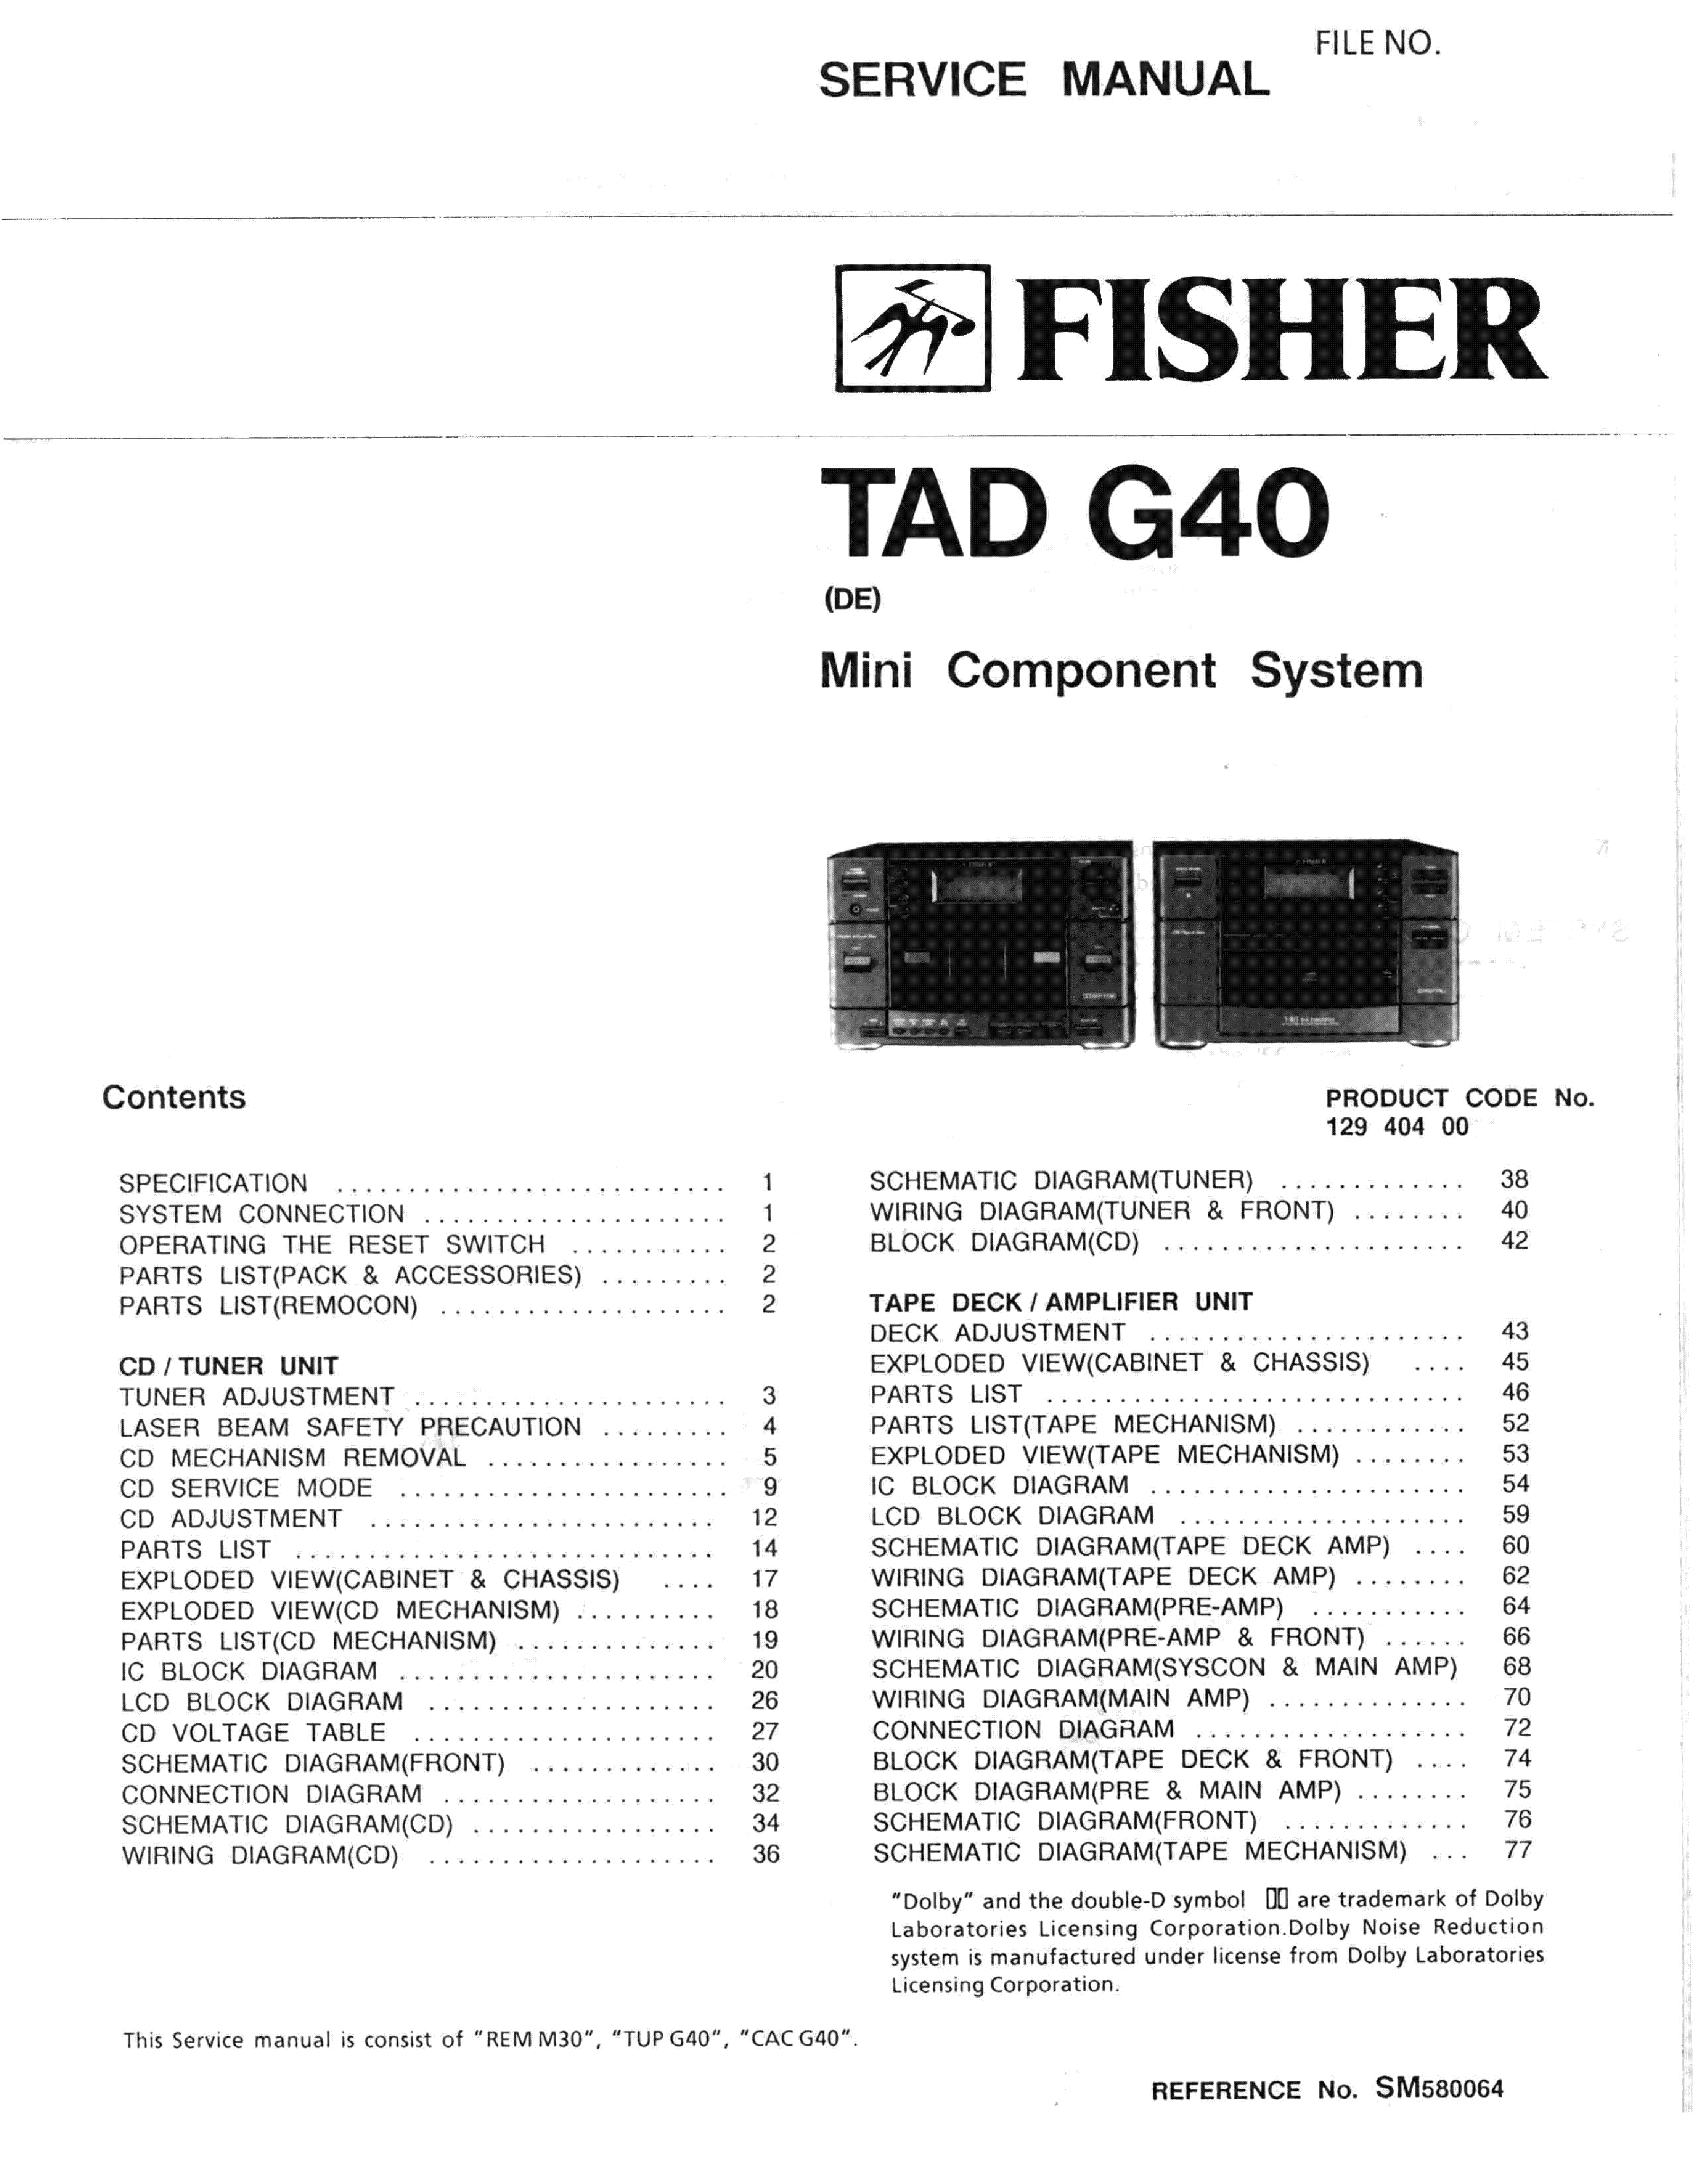 Fisher 69t sm service manual download schematics eeprom repair fisher ccuart Choice Image